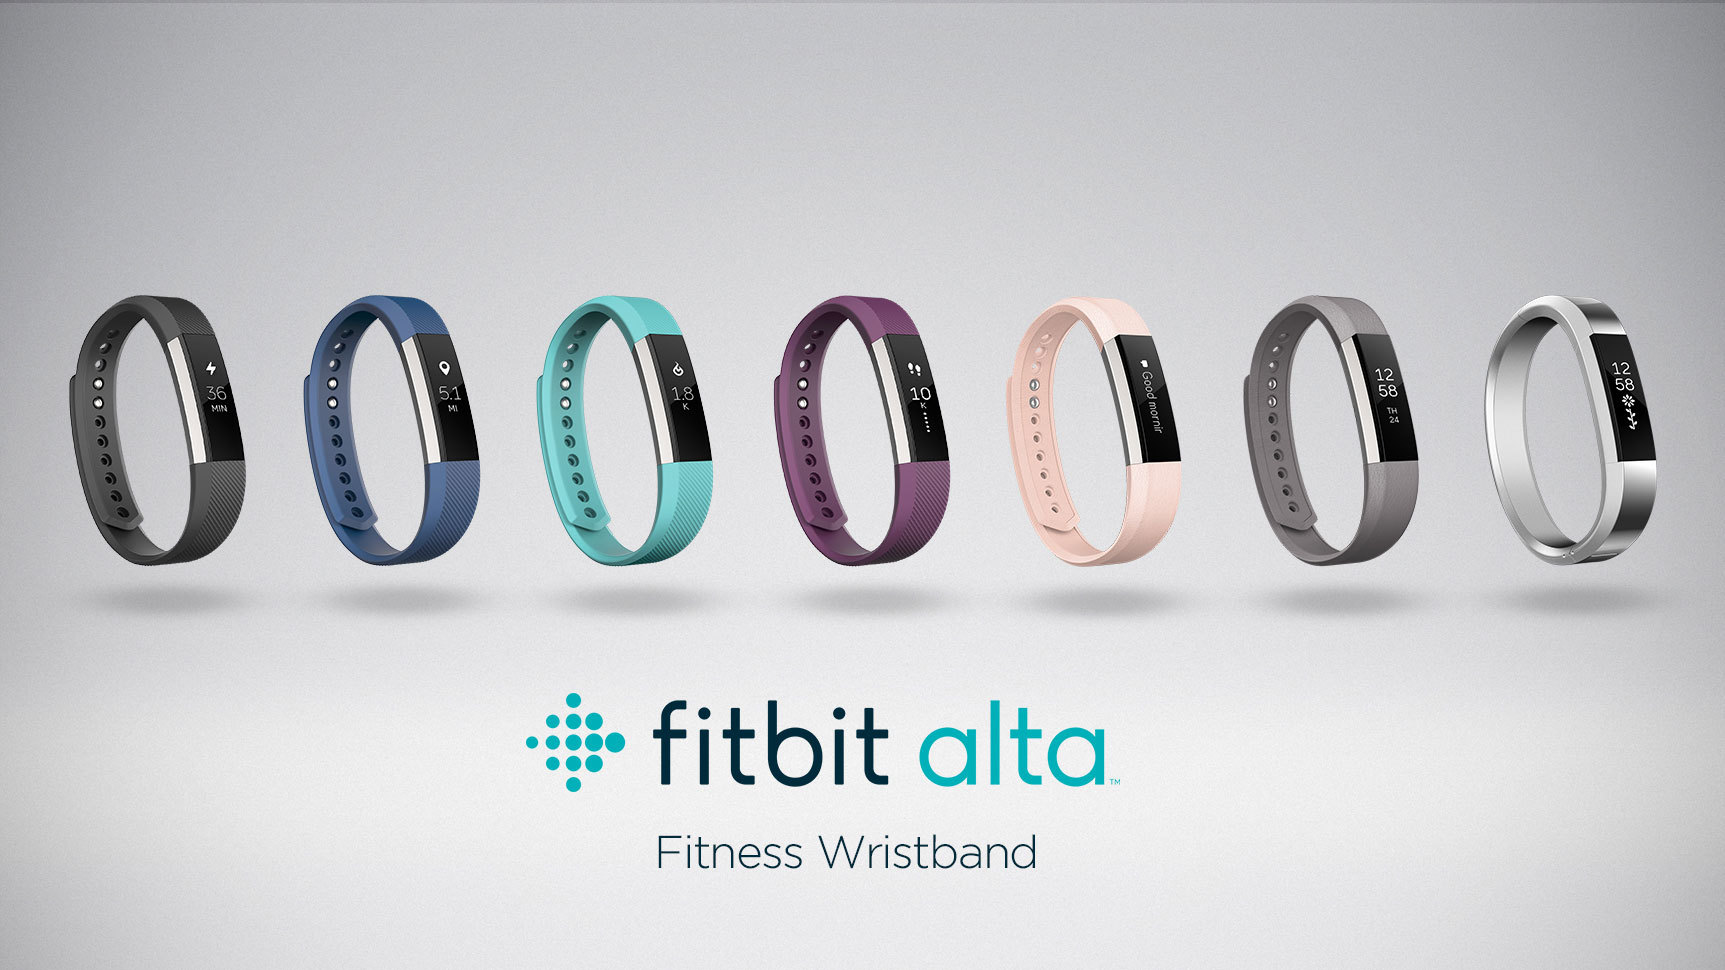 Fitbit Alta features and spec